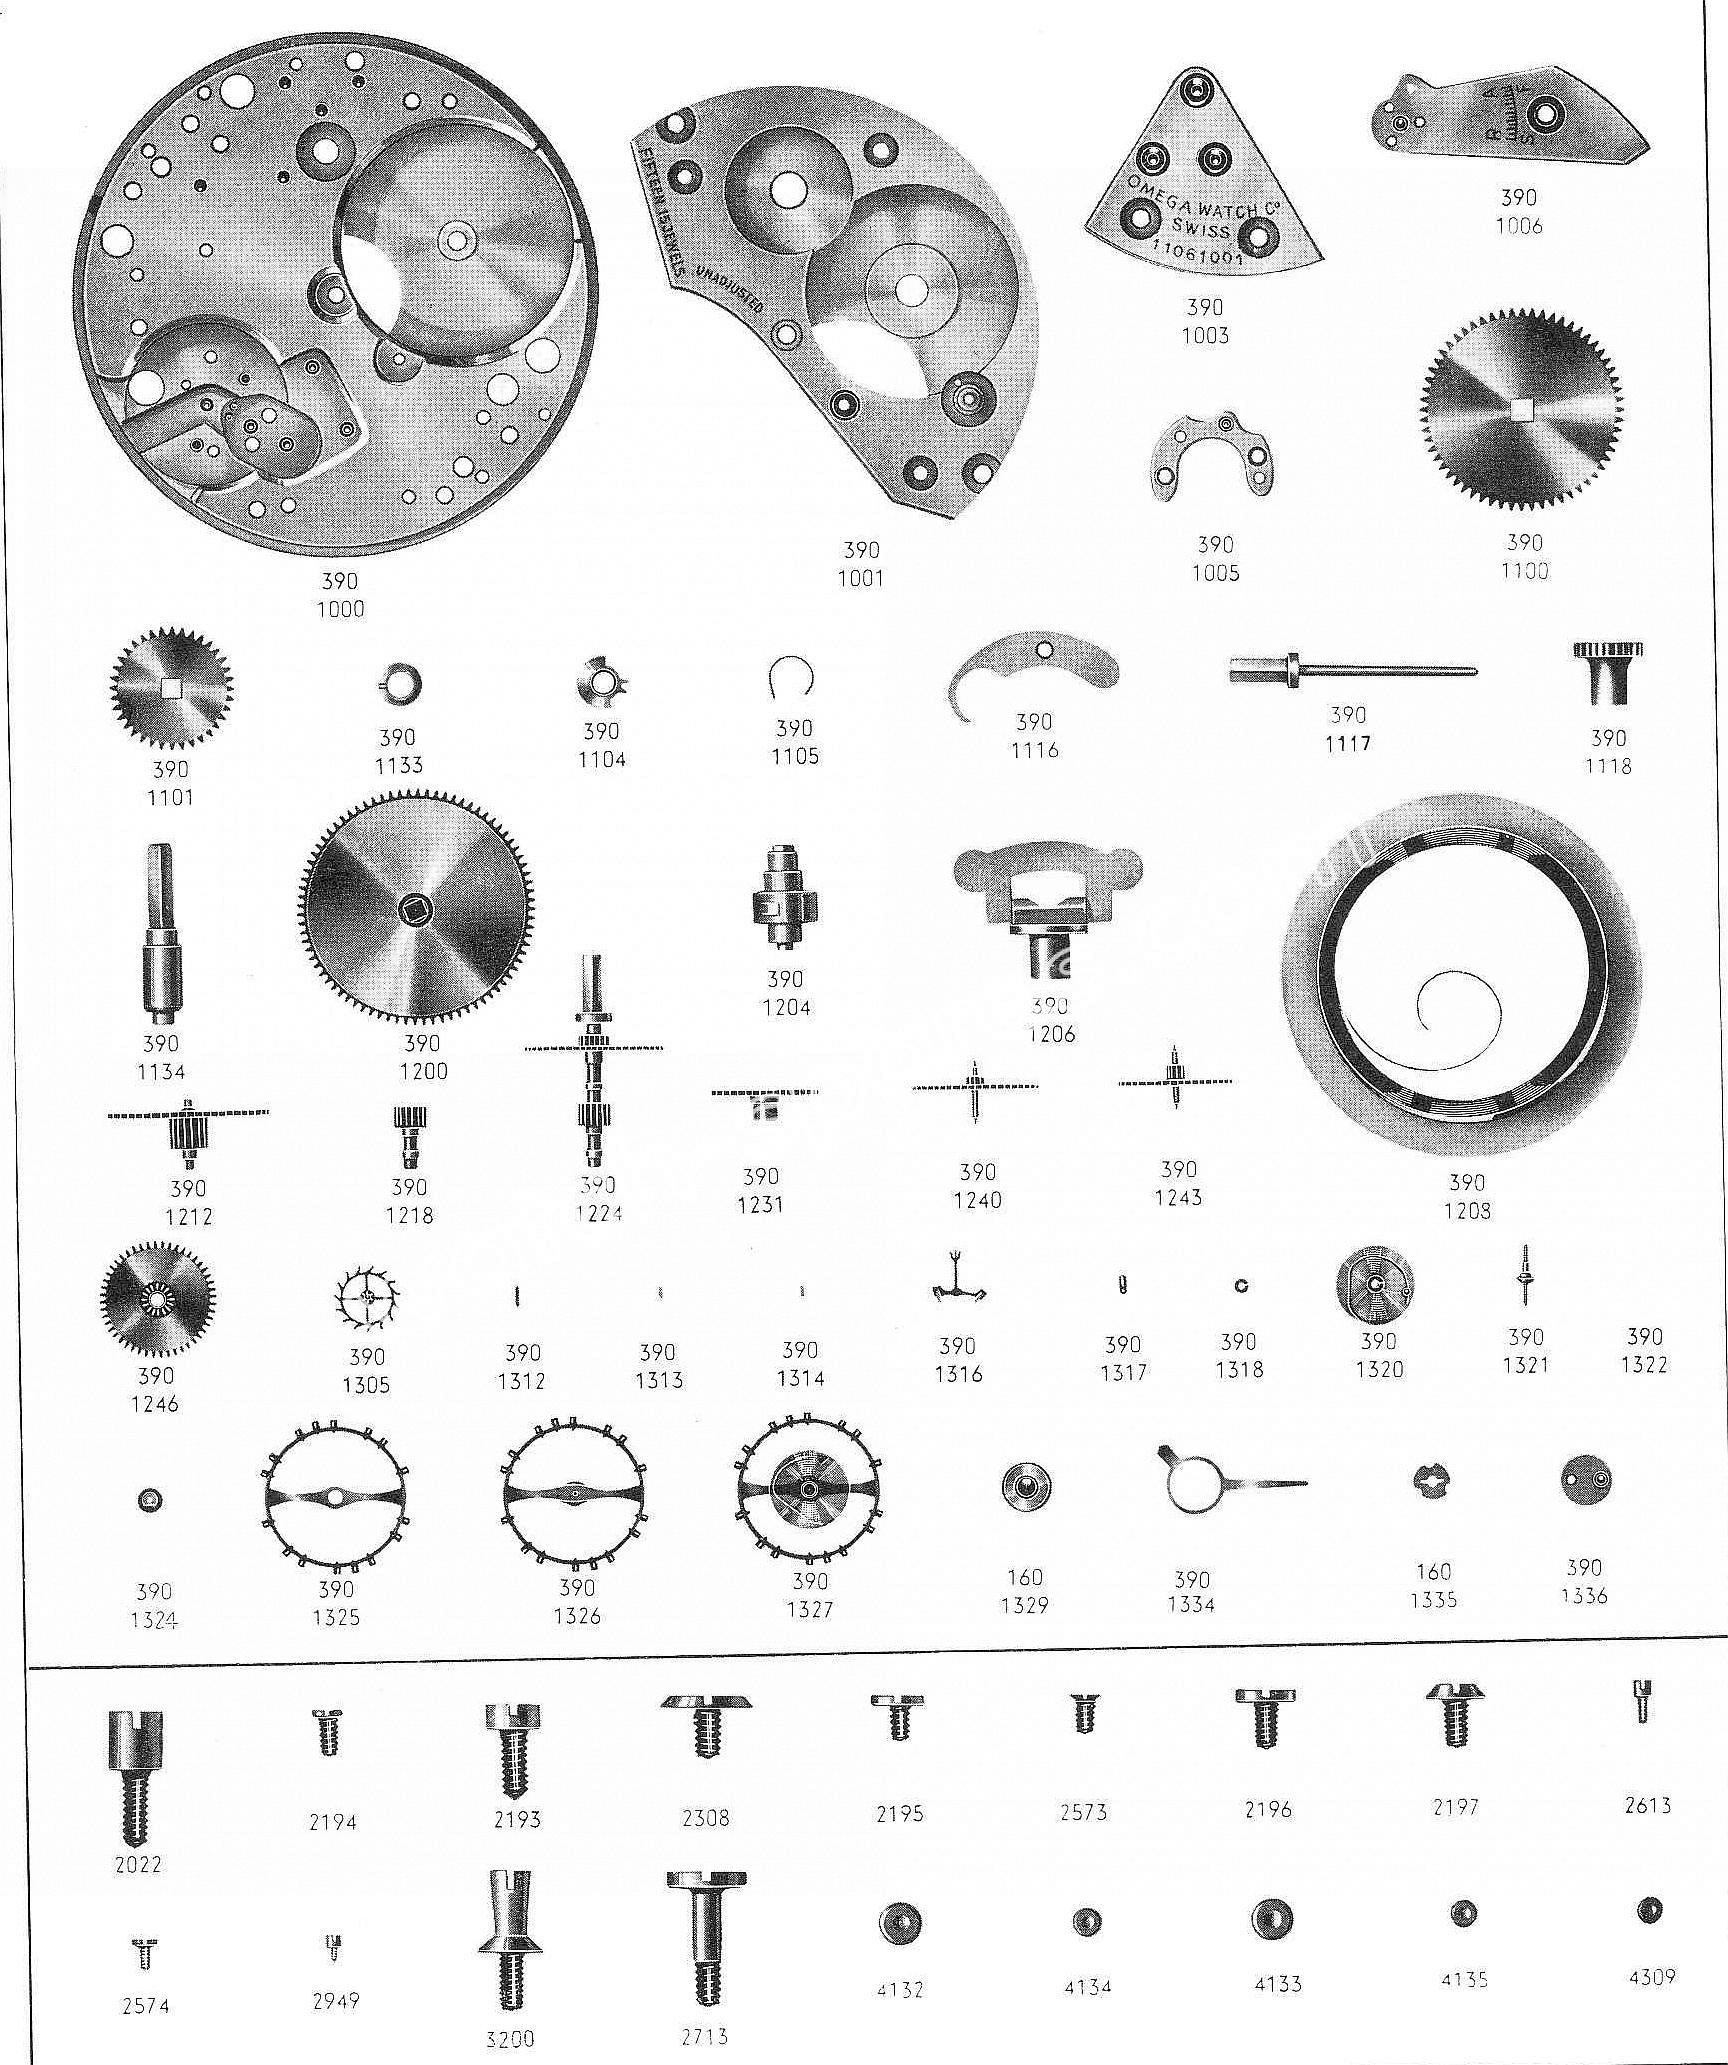 Omega 390 watch parts